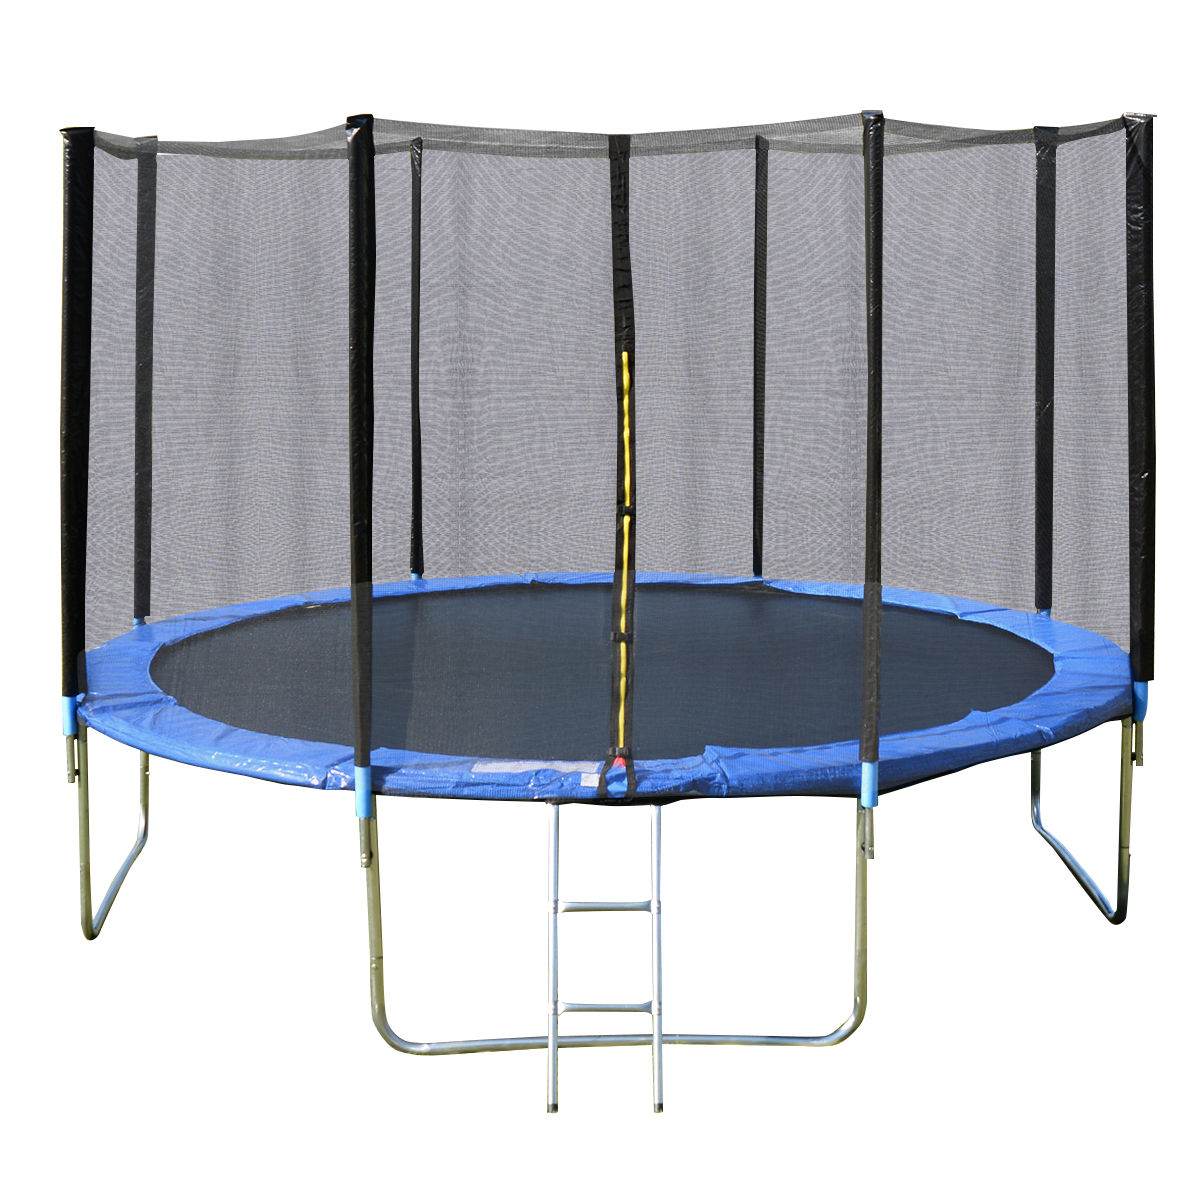 NEW HEAVY DUTY TRAMPOLINE 14 FT WITH LADDER & SAFETY NET